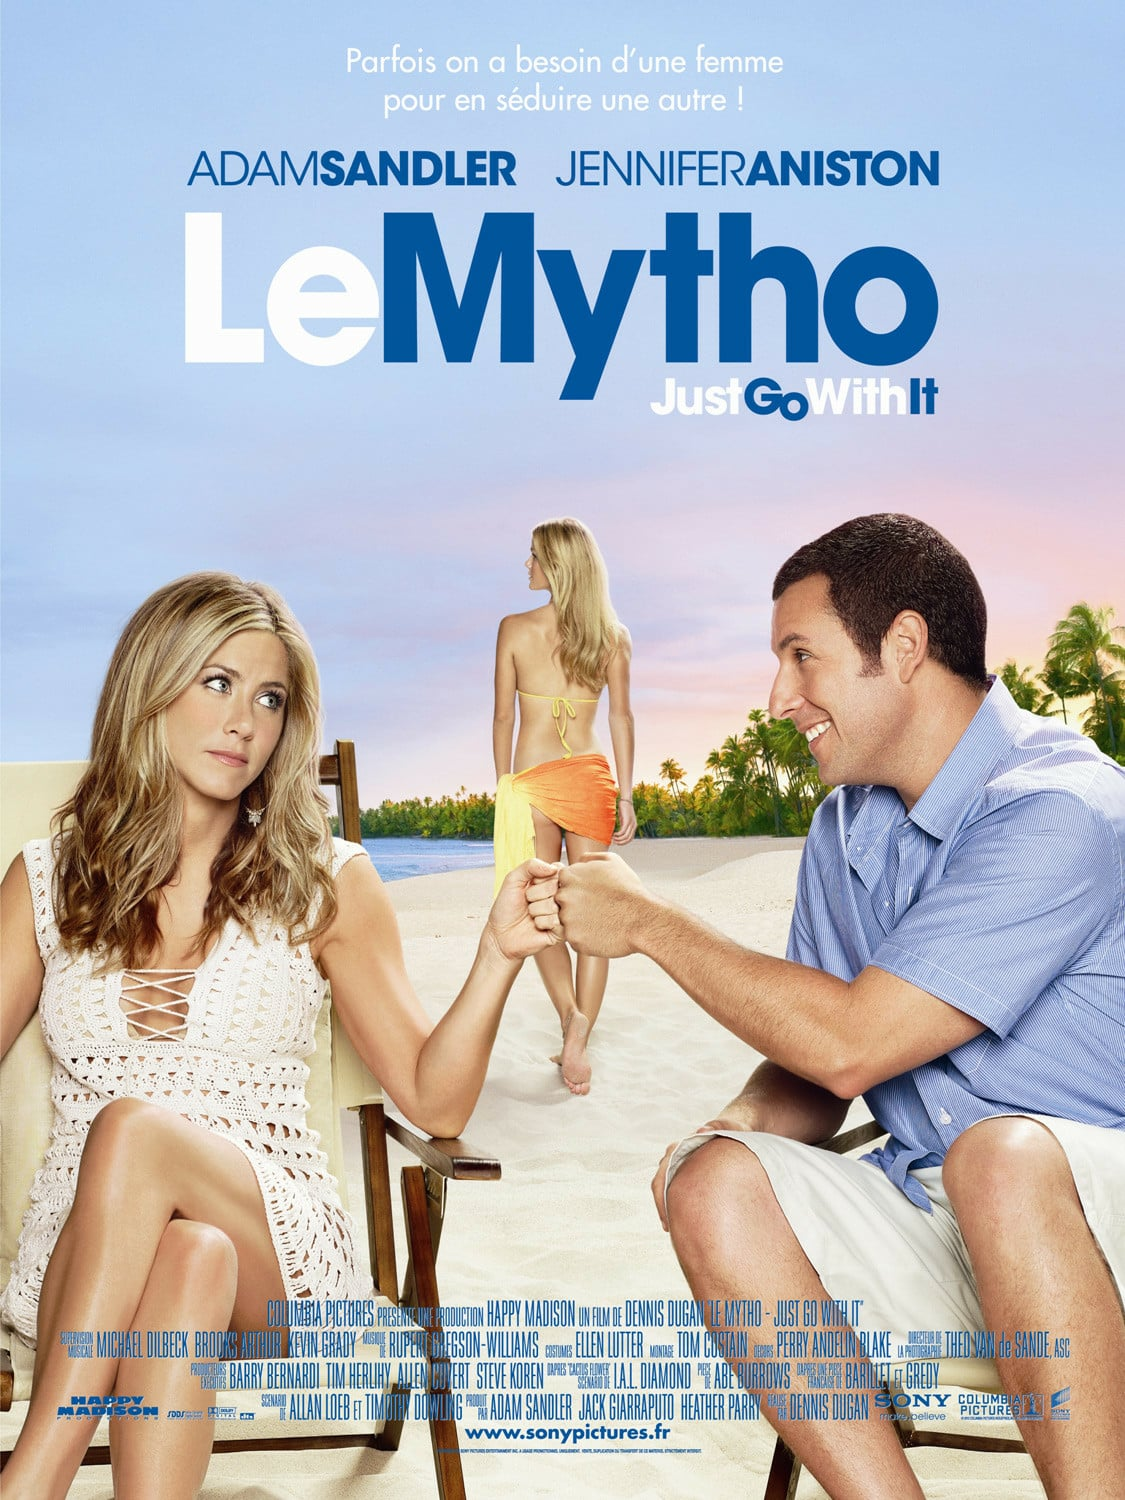 affiche du film Le mytho: Just Go with It